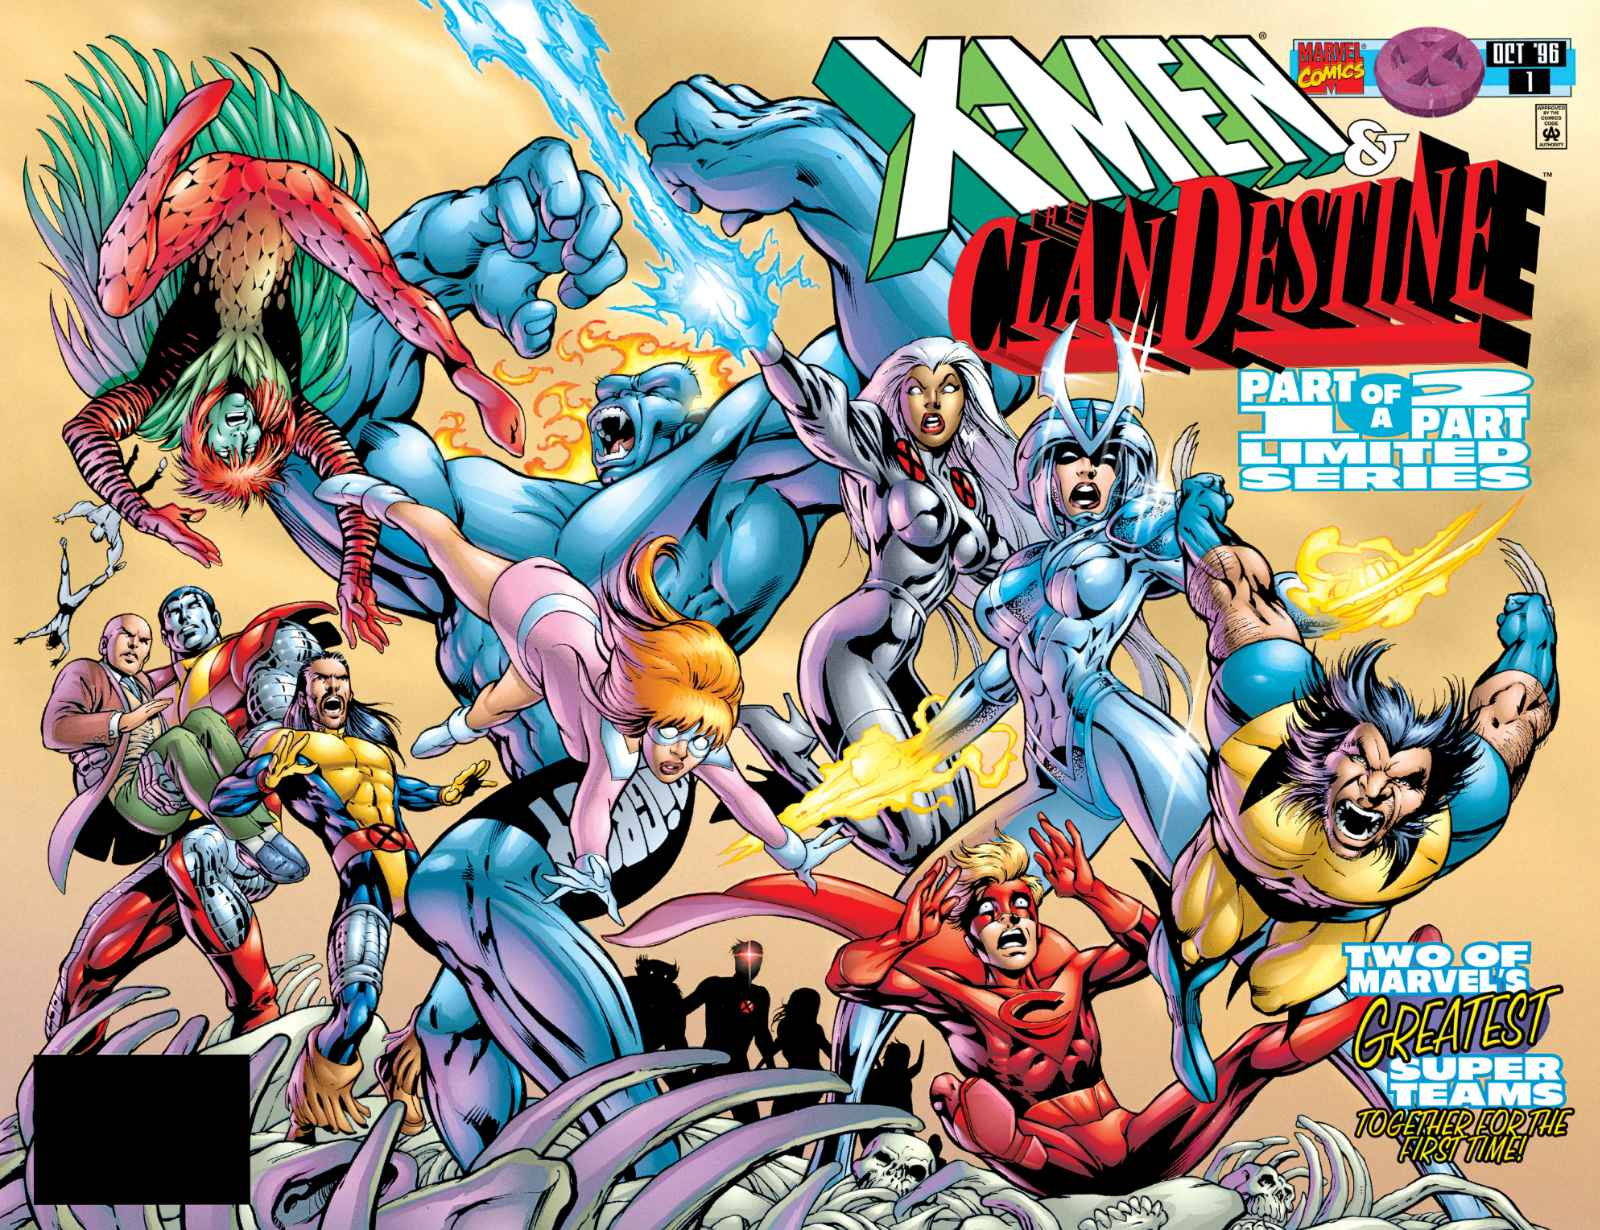 ClanDestine Week: The X-Men Special